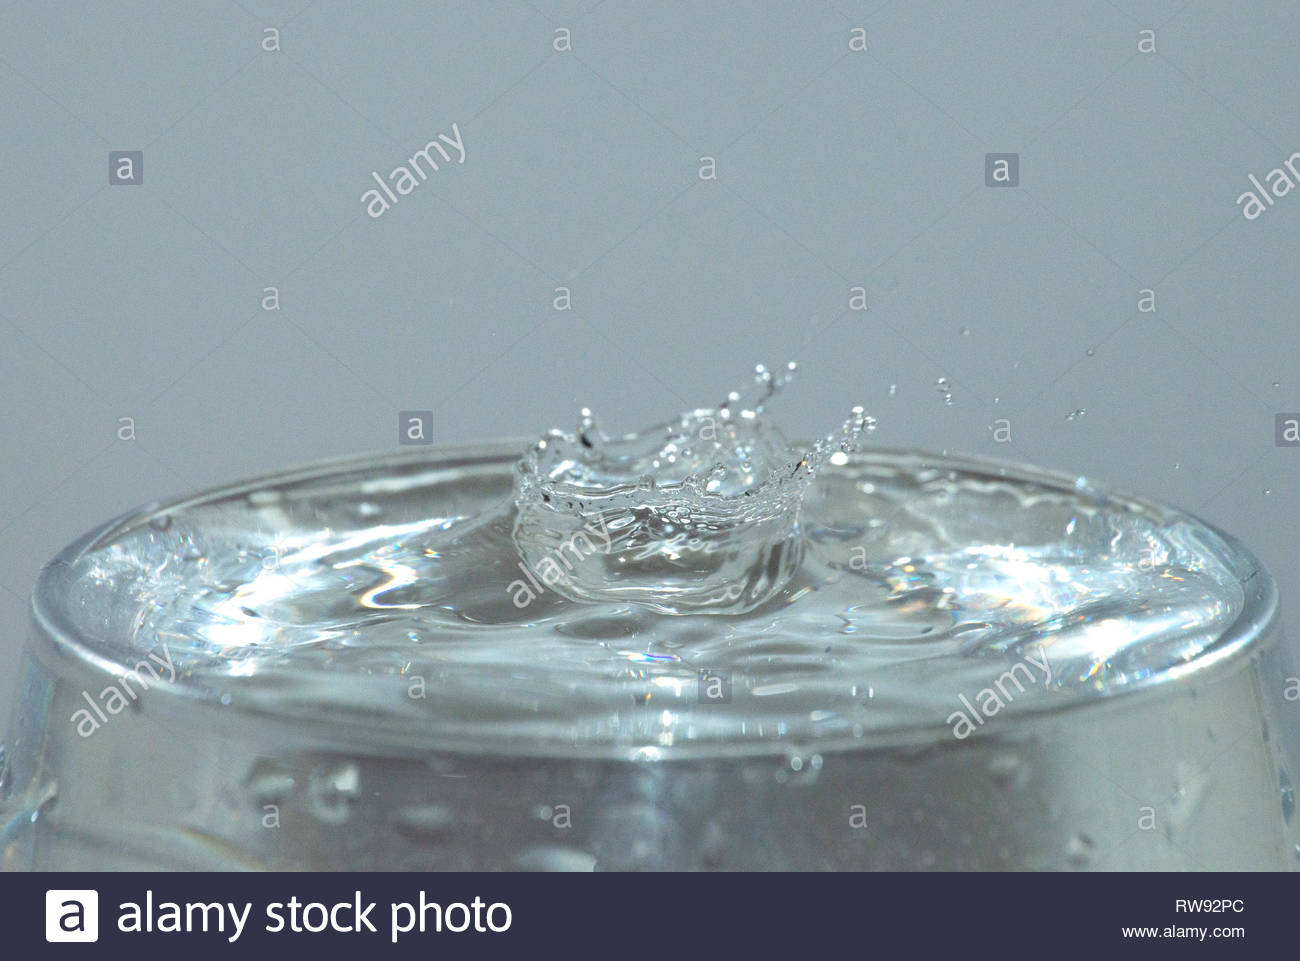 Water drop in glass - Stock Image